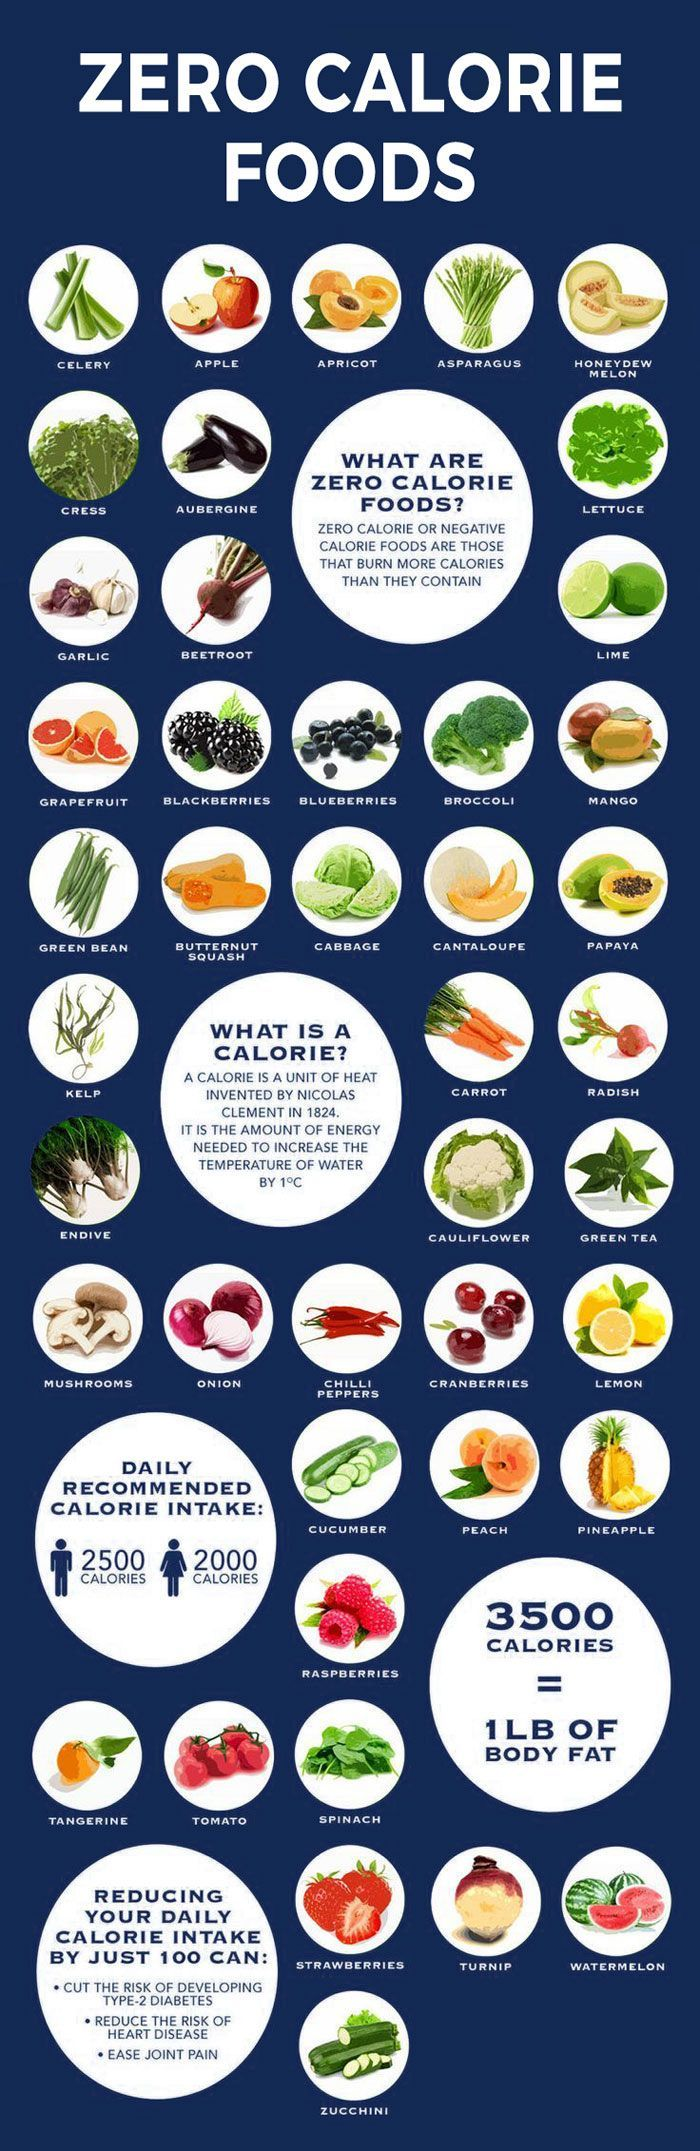 Meal Replacement Diet Guide